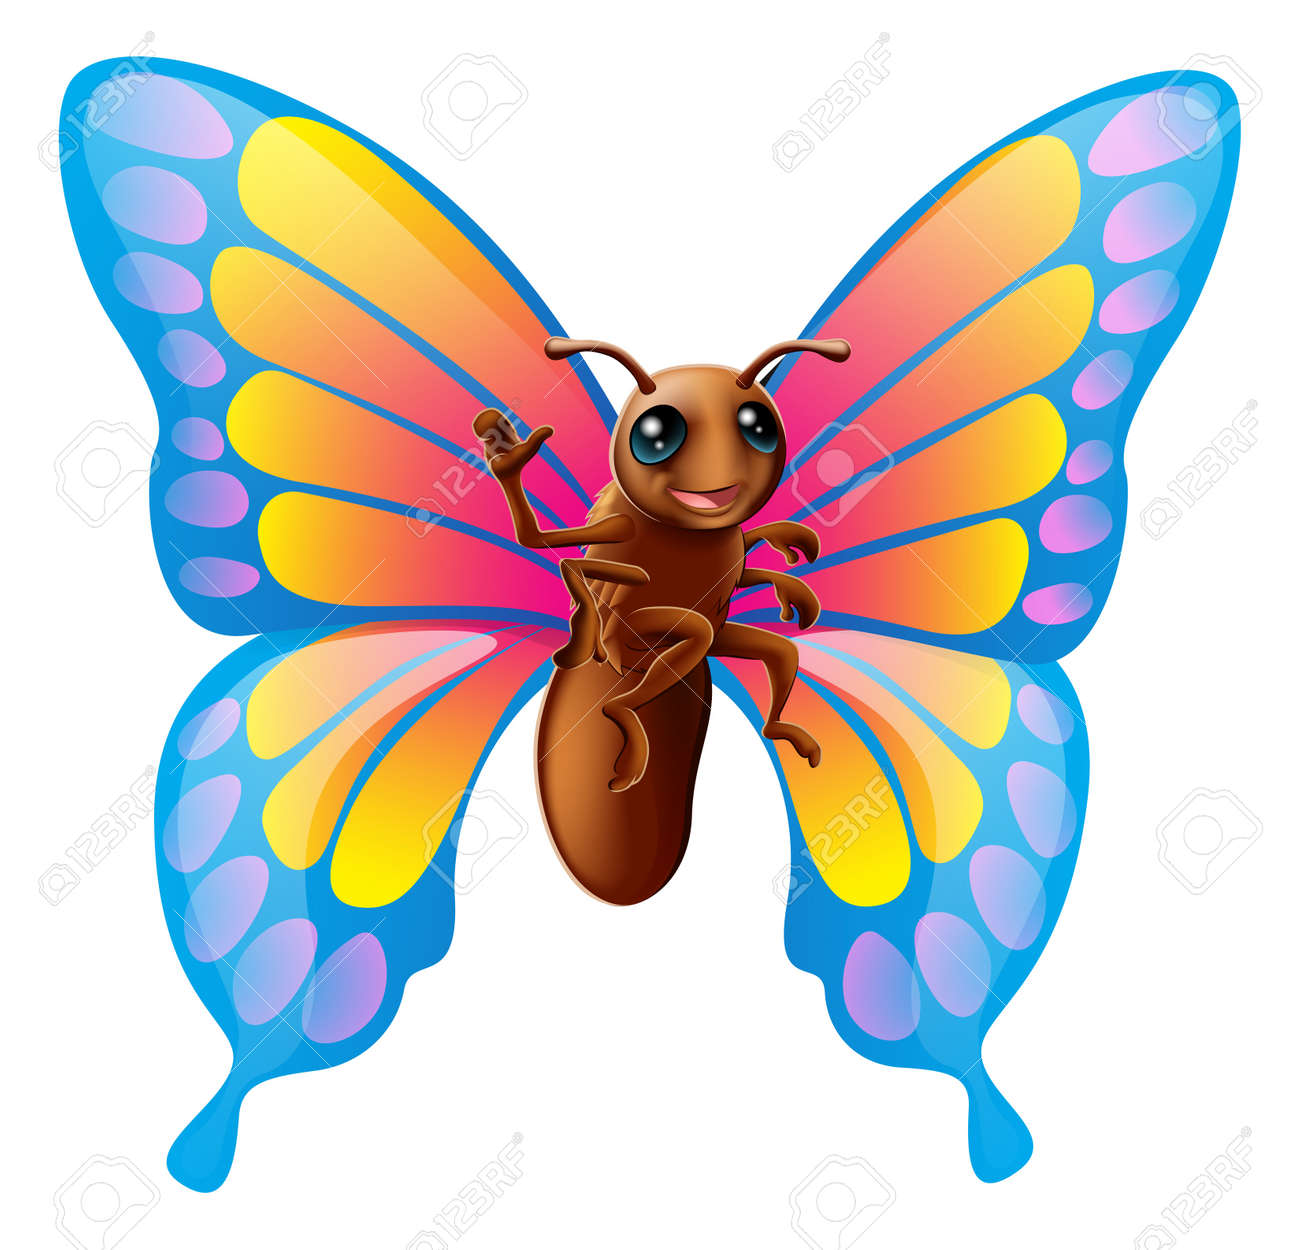 illustration of a happy cute cartoon butterfly mascot waving